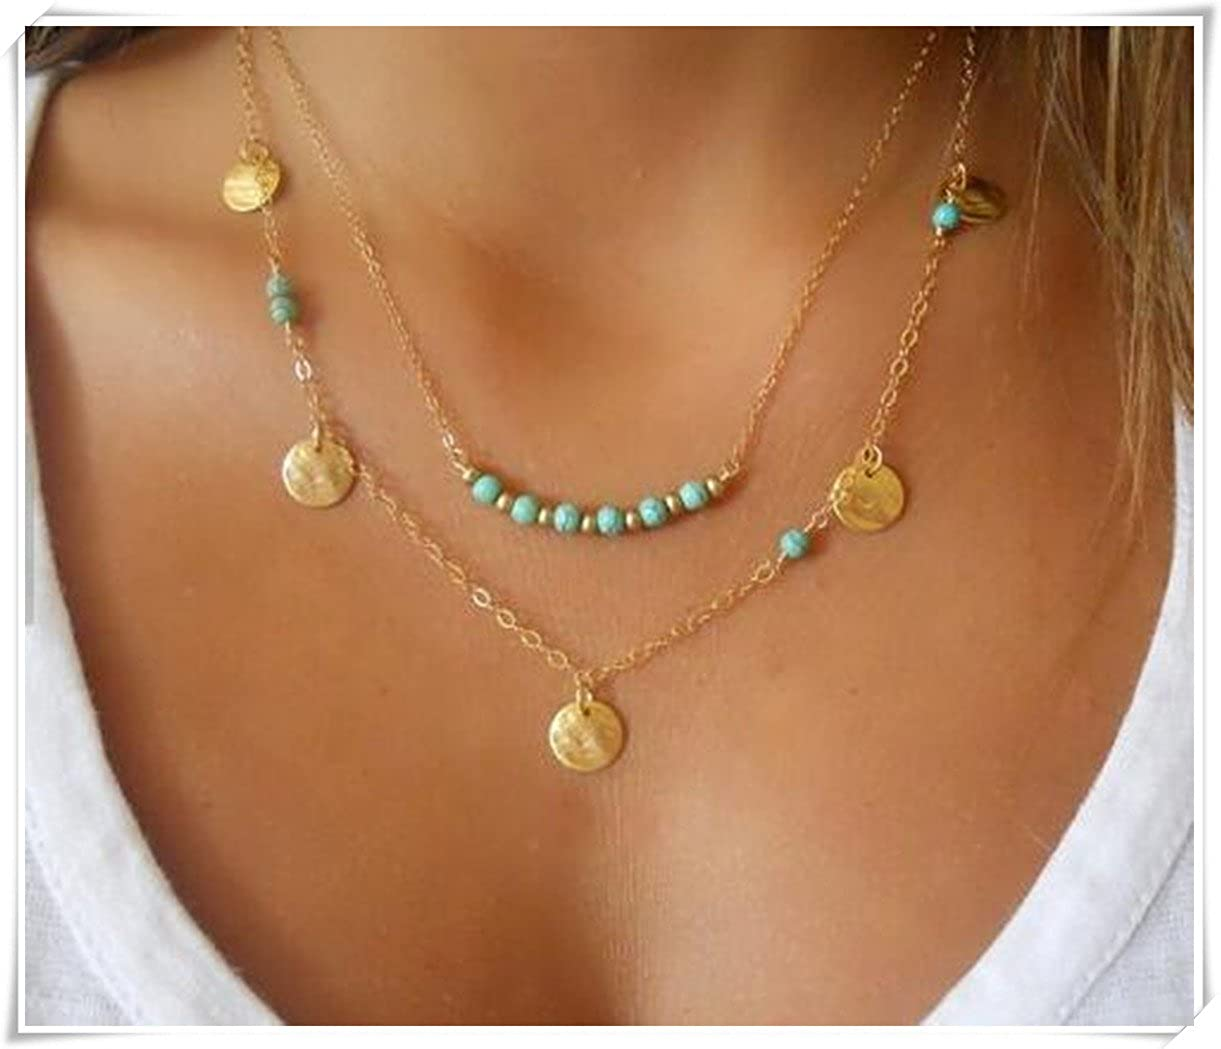 Turquoise Necklace; Set of 2 Necklaces; Layered Necklace; Gold Filled Necklace; Turquoise & Gold Necklace; Coin Necklace; Boho Necklace C88